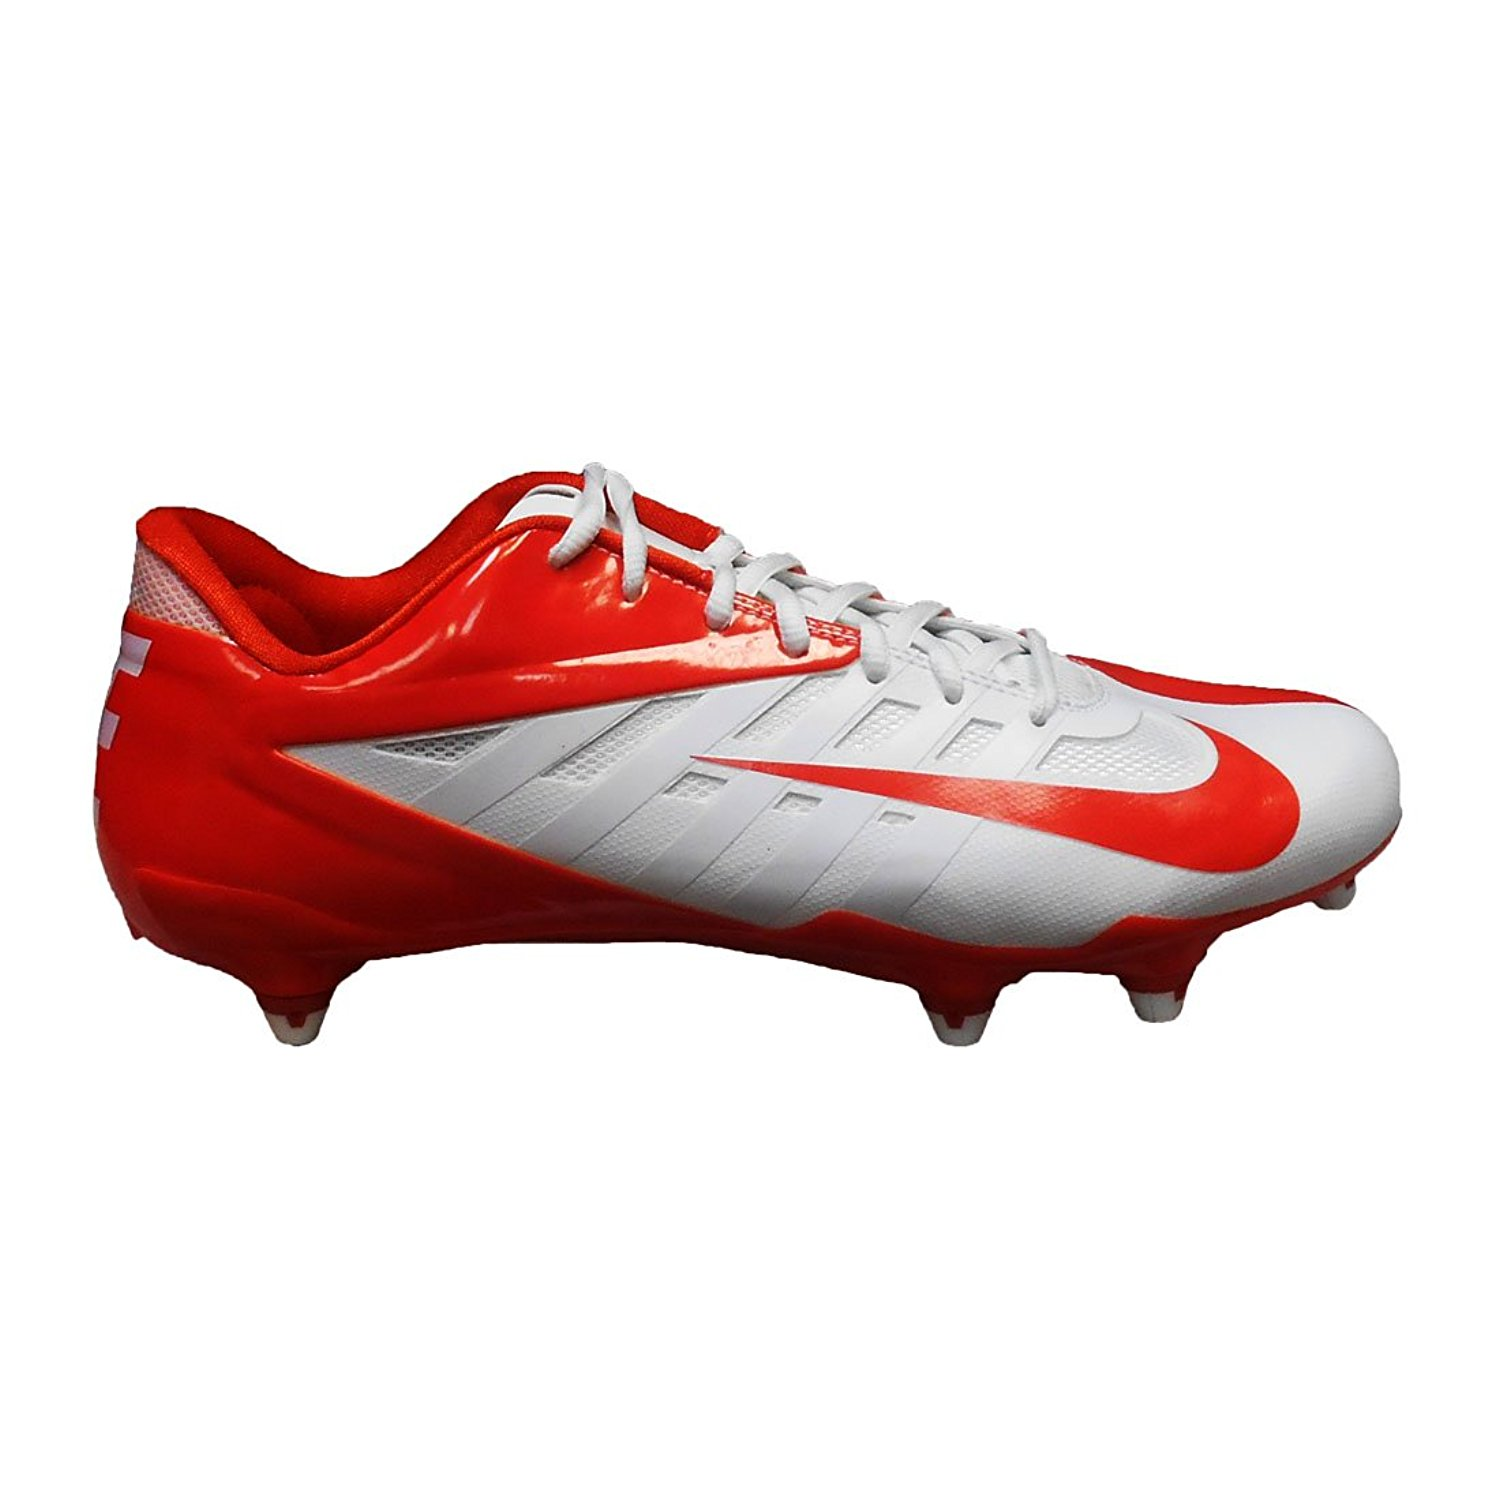 4e06feafdc8 Get Quotations · Nike Vapor Speed Low Detachable Football Cleats